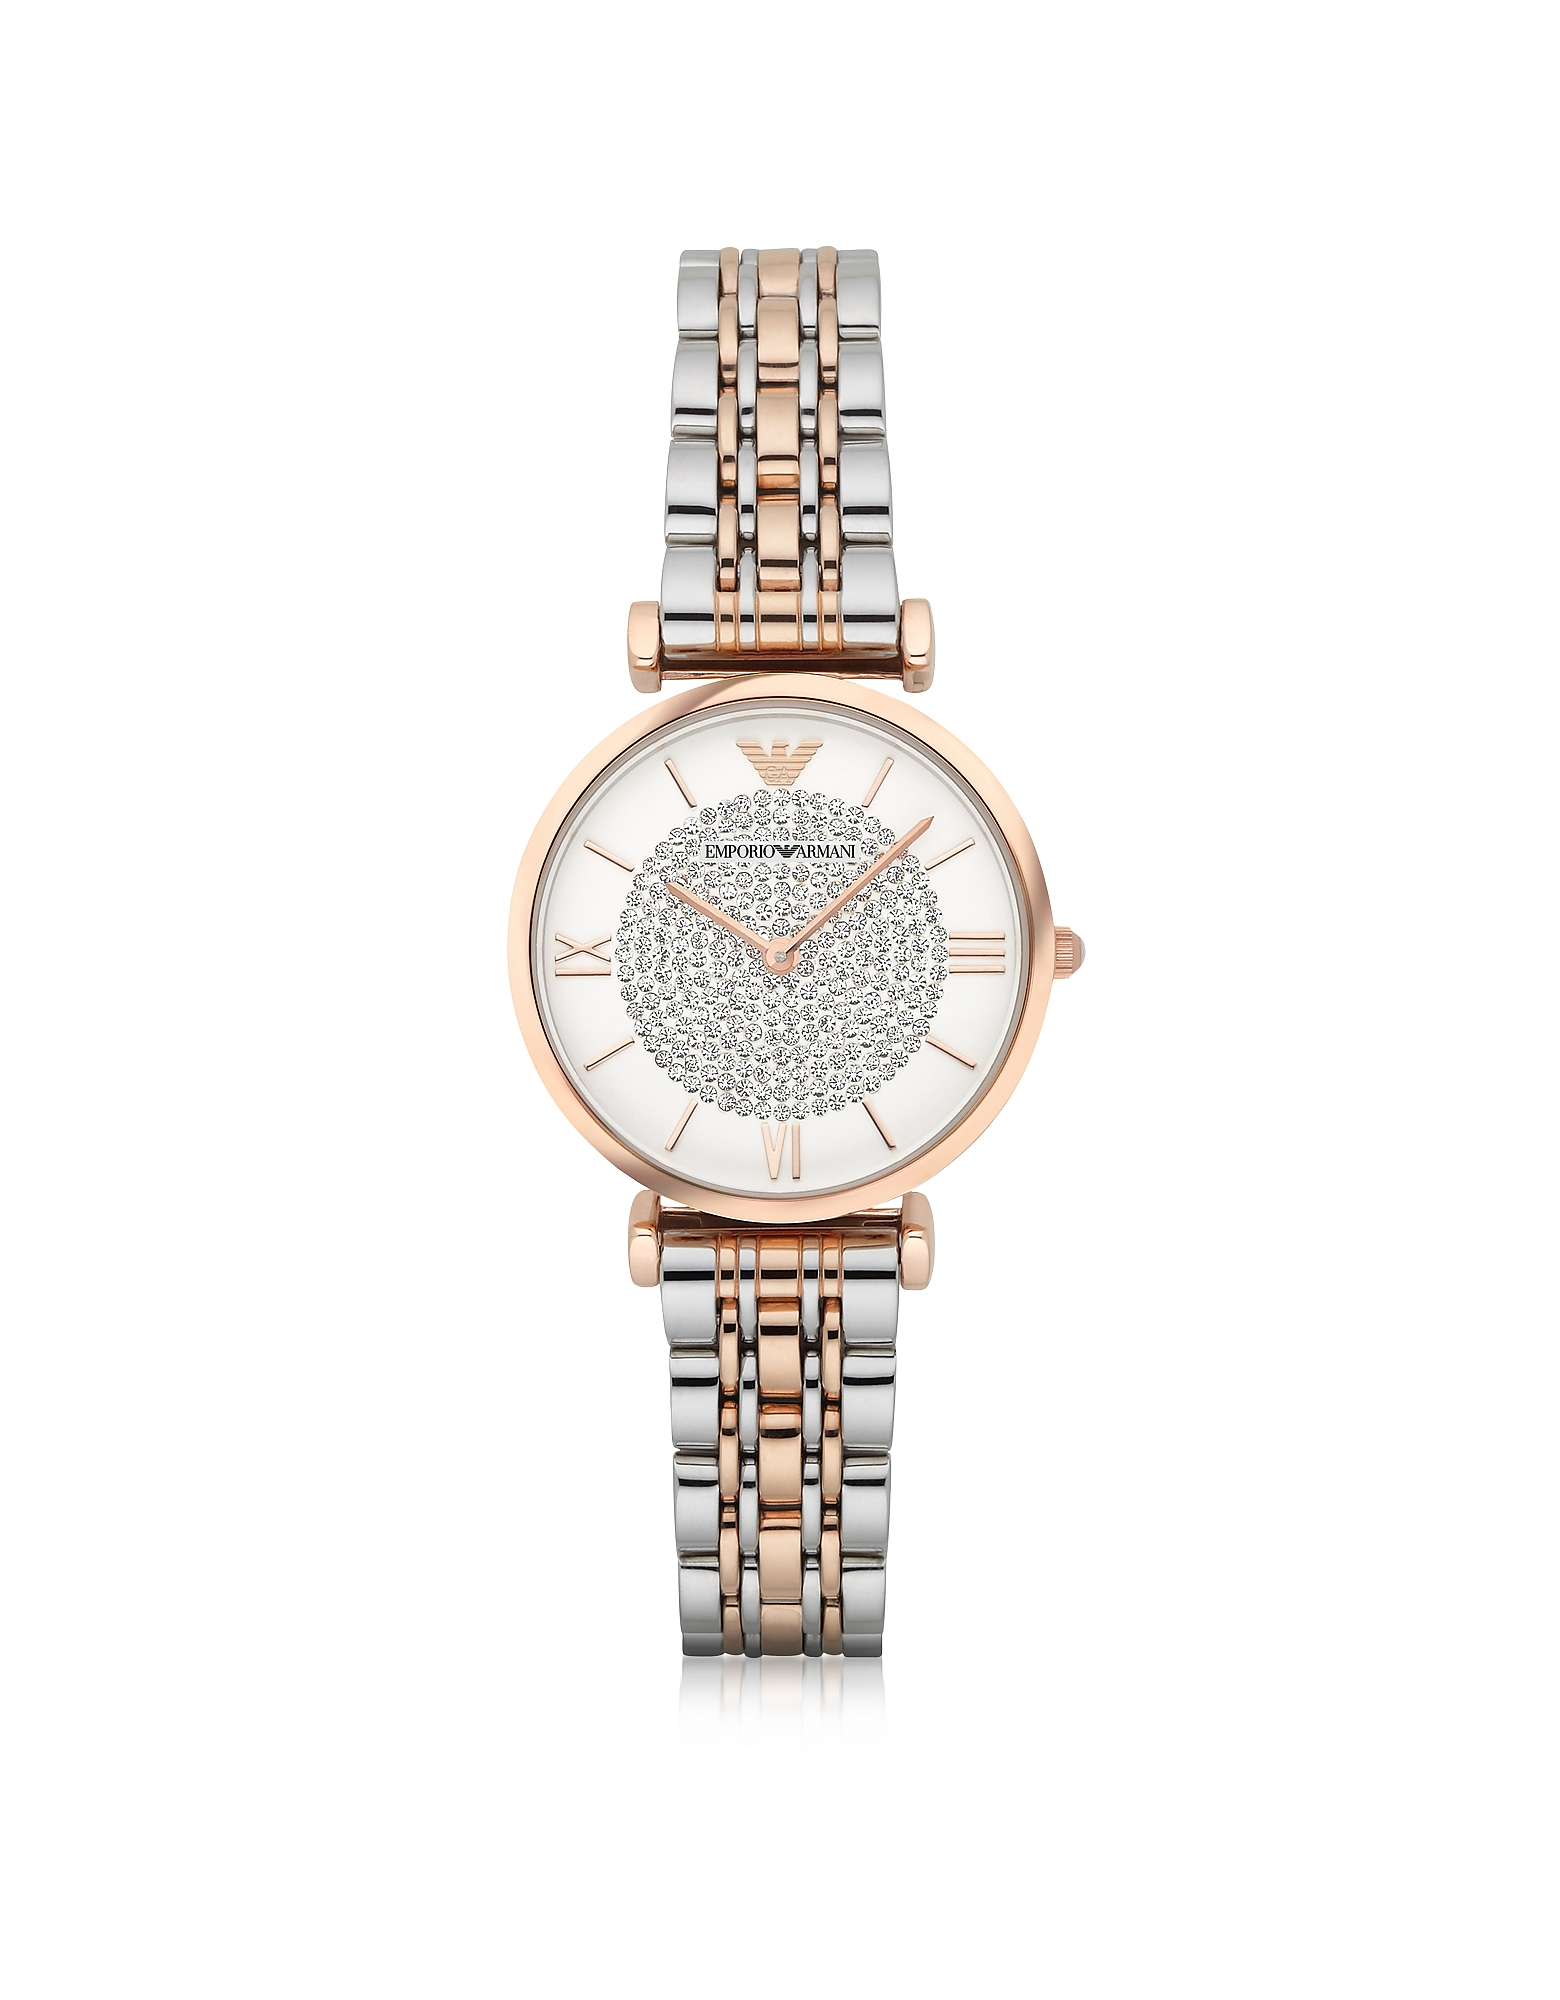 Emporio Armani Women's Watches, T-Bar Two Tone Stainless Steel Women's Watch w/Crystals Dial